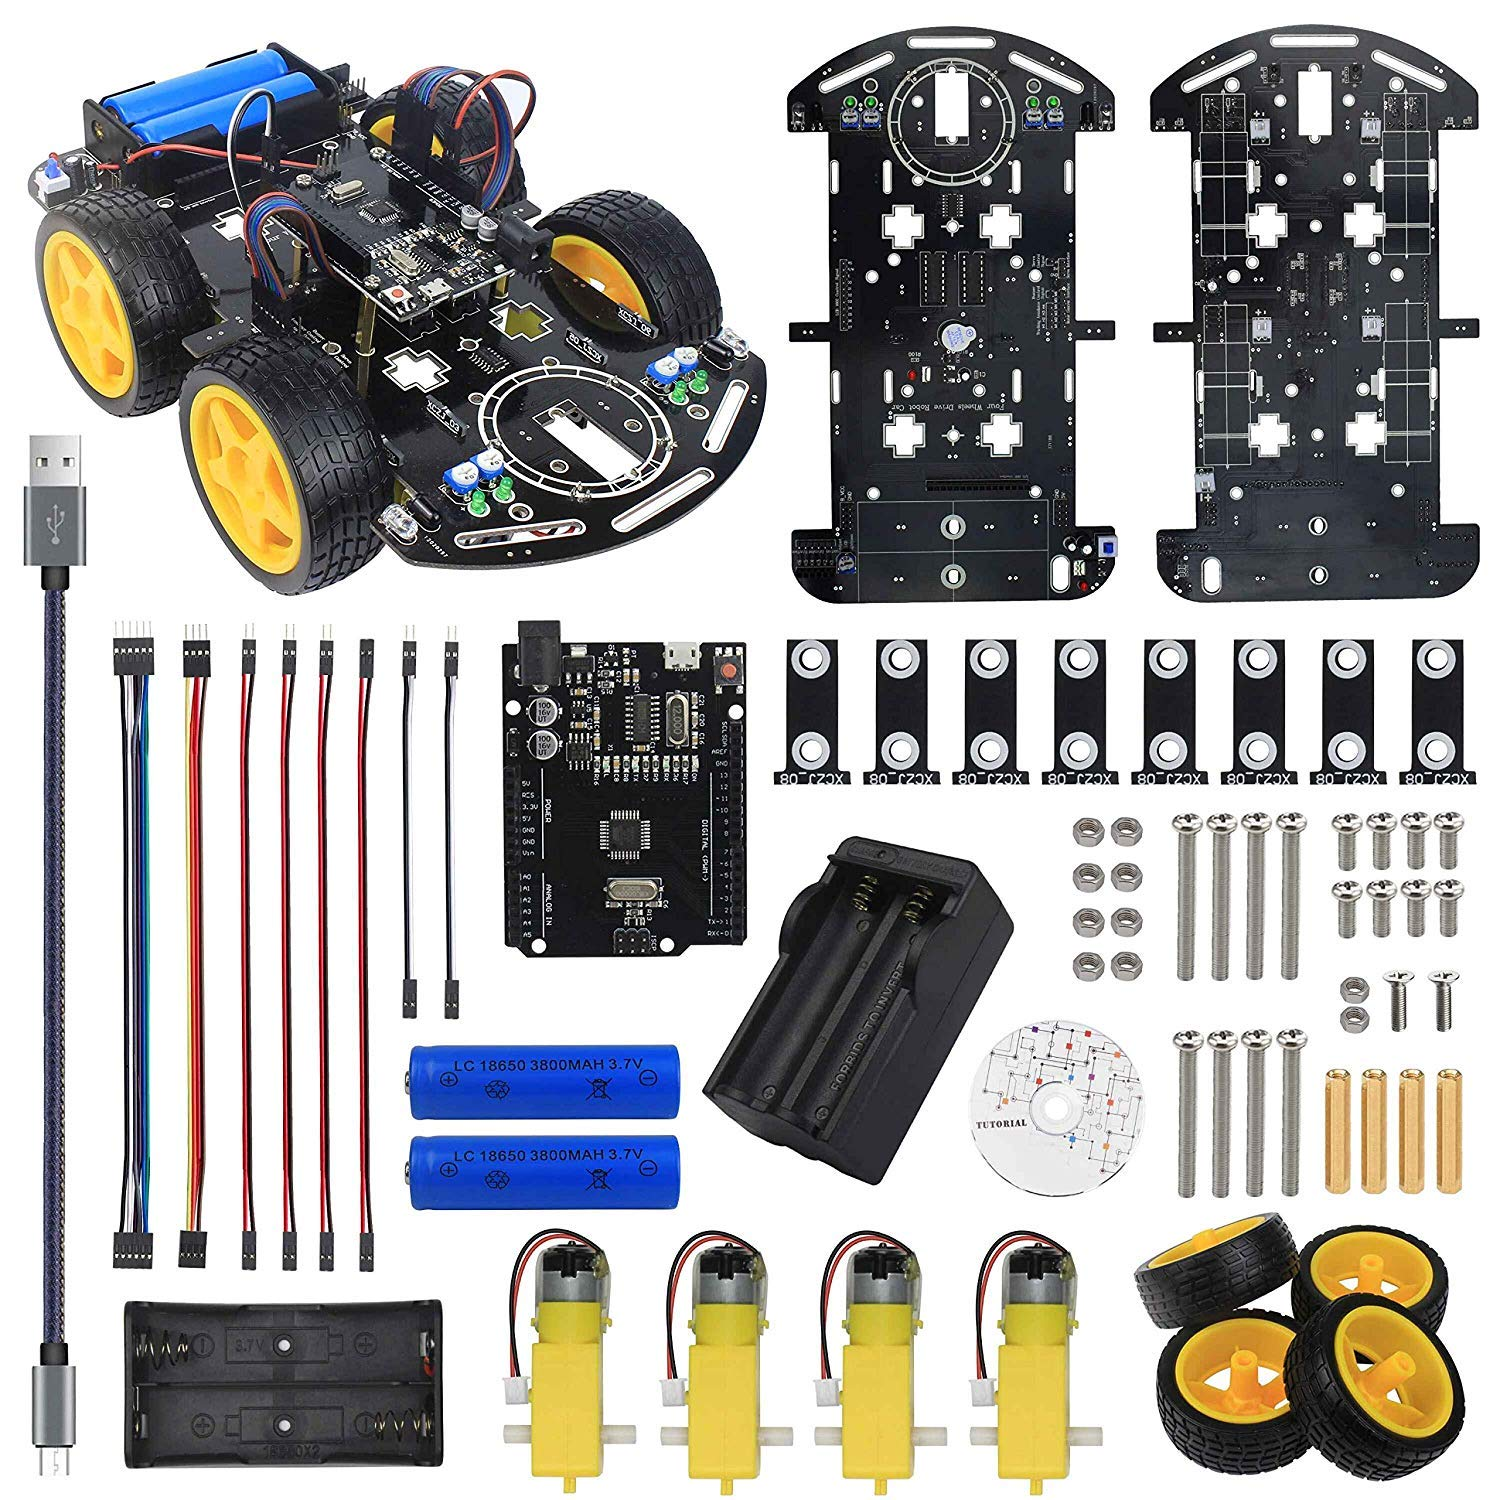 Basic Smart Robot Car Chassis for Arduino UNO R3 , Motor Wheel, Line